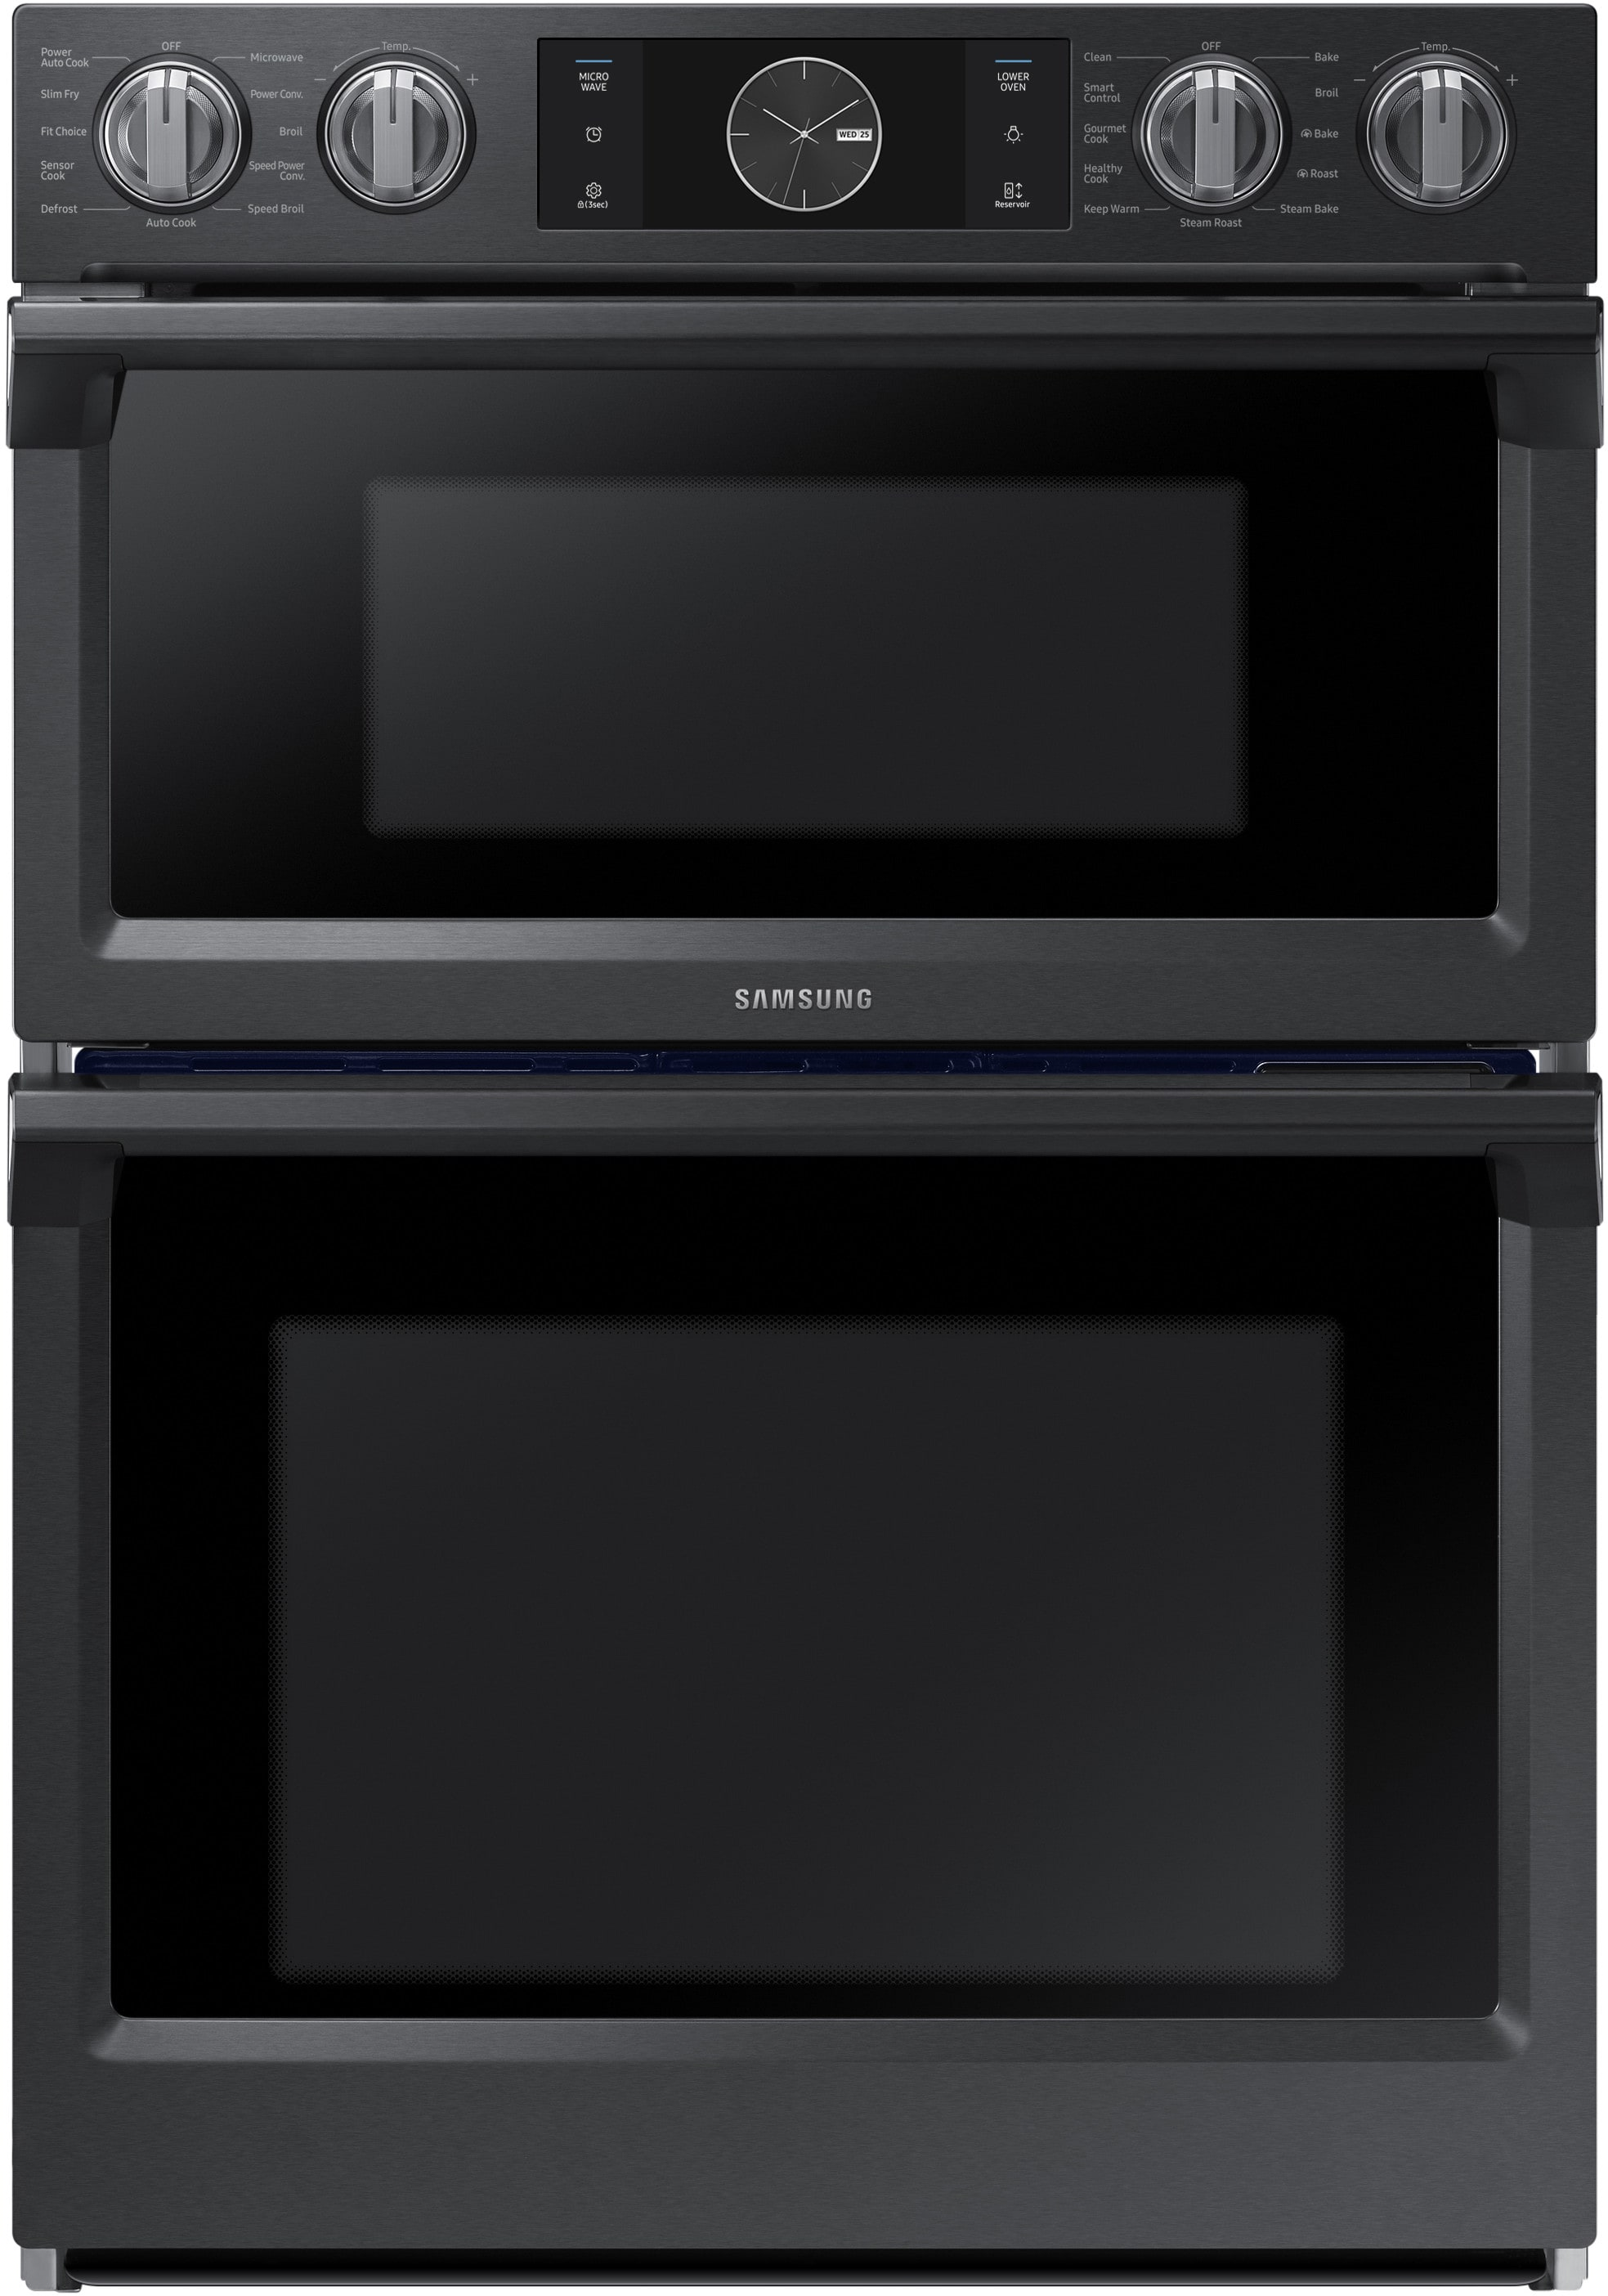 Samsung Nq70m7770dg 30 Inch Combination Electric Wall Oven